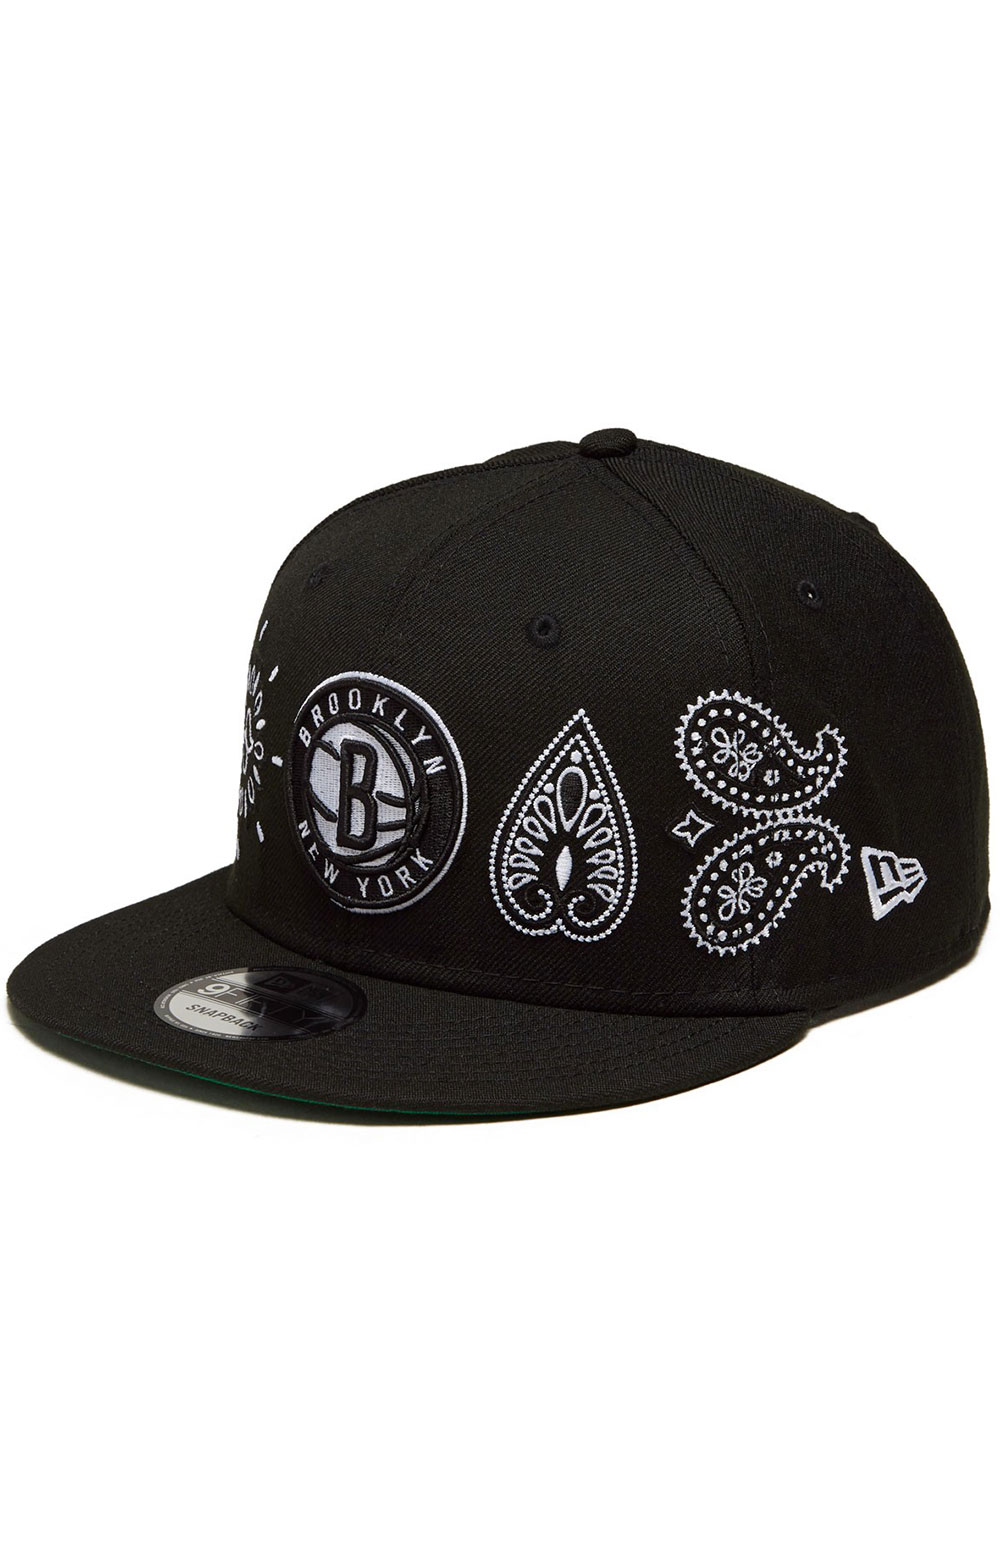 Brooklyn Nets Paisley Elements 59Fifty Fitted Hat - Black